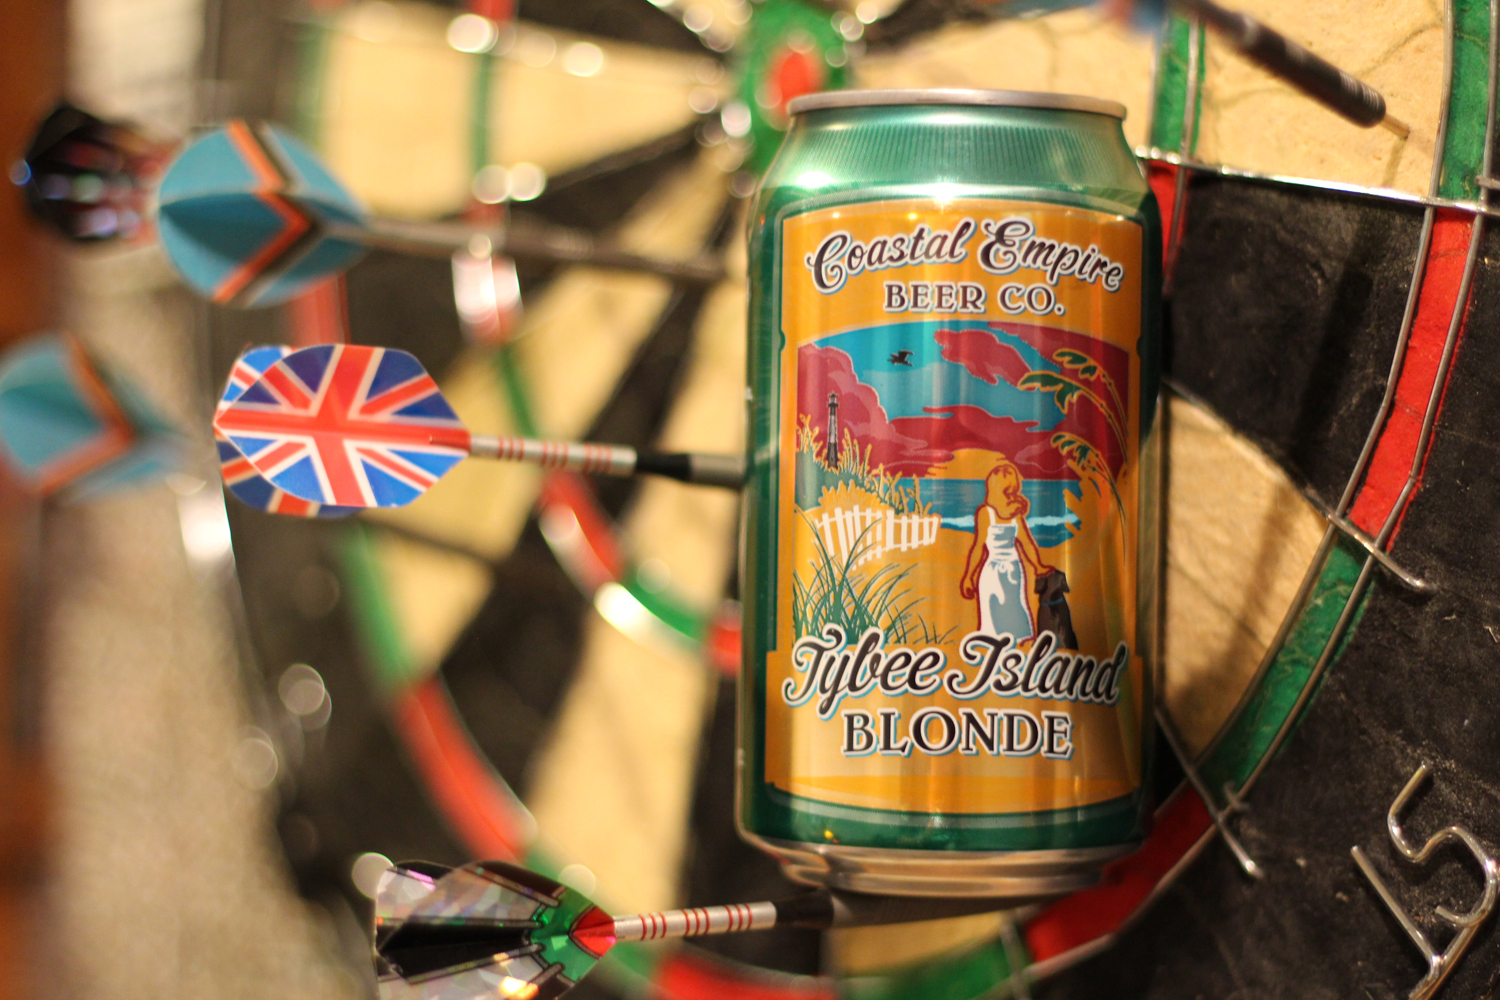 Tybee Island Beer is a great summer blonde from Coastal Empire.